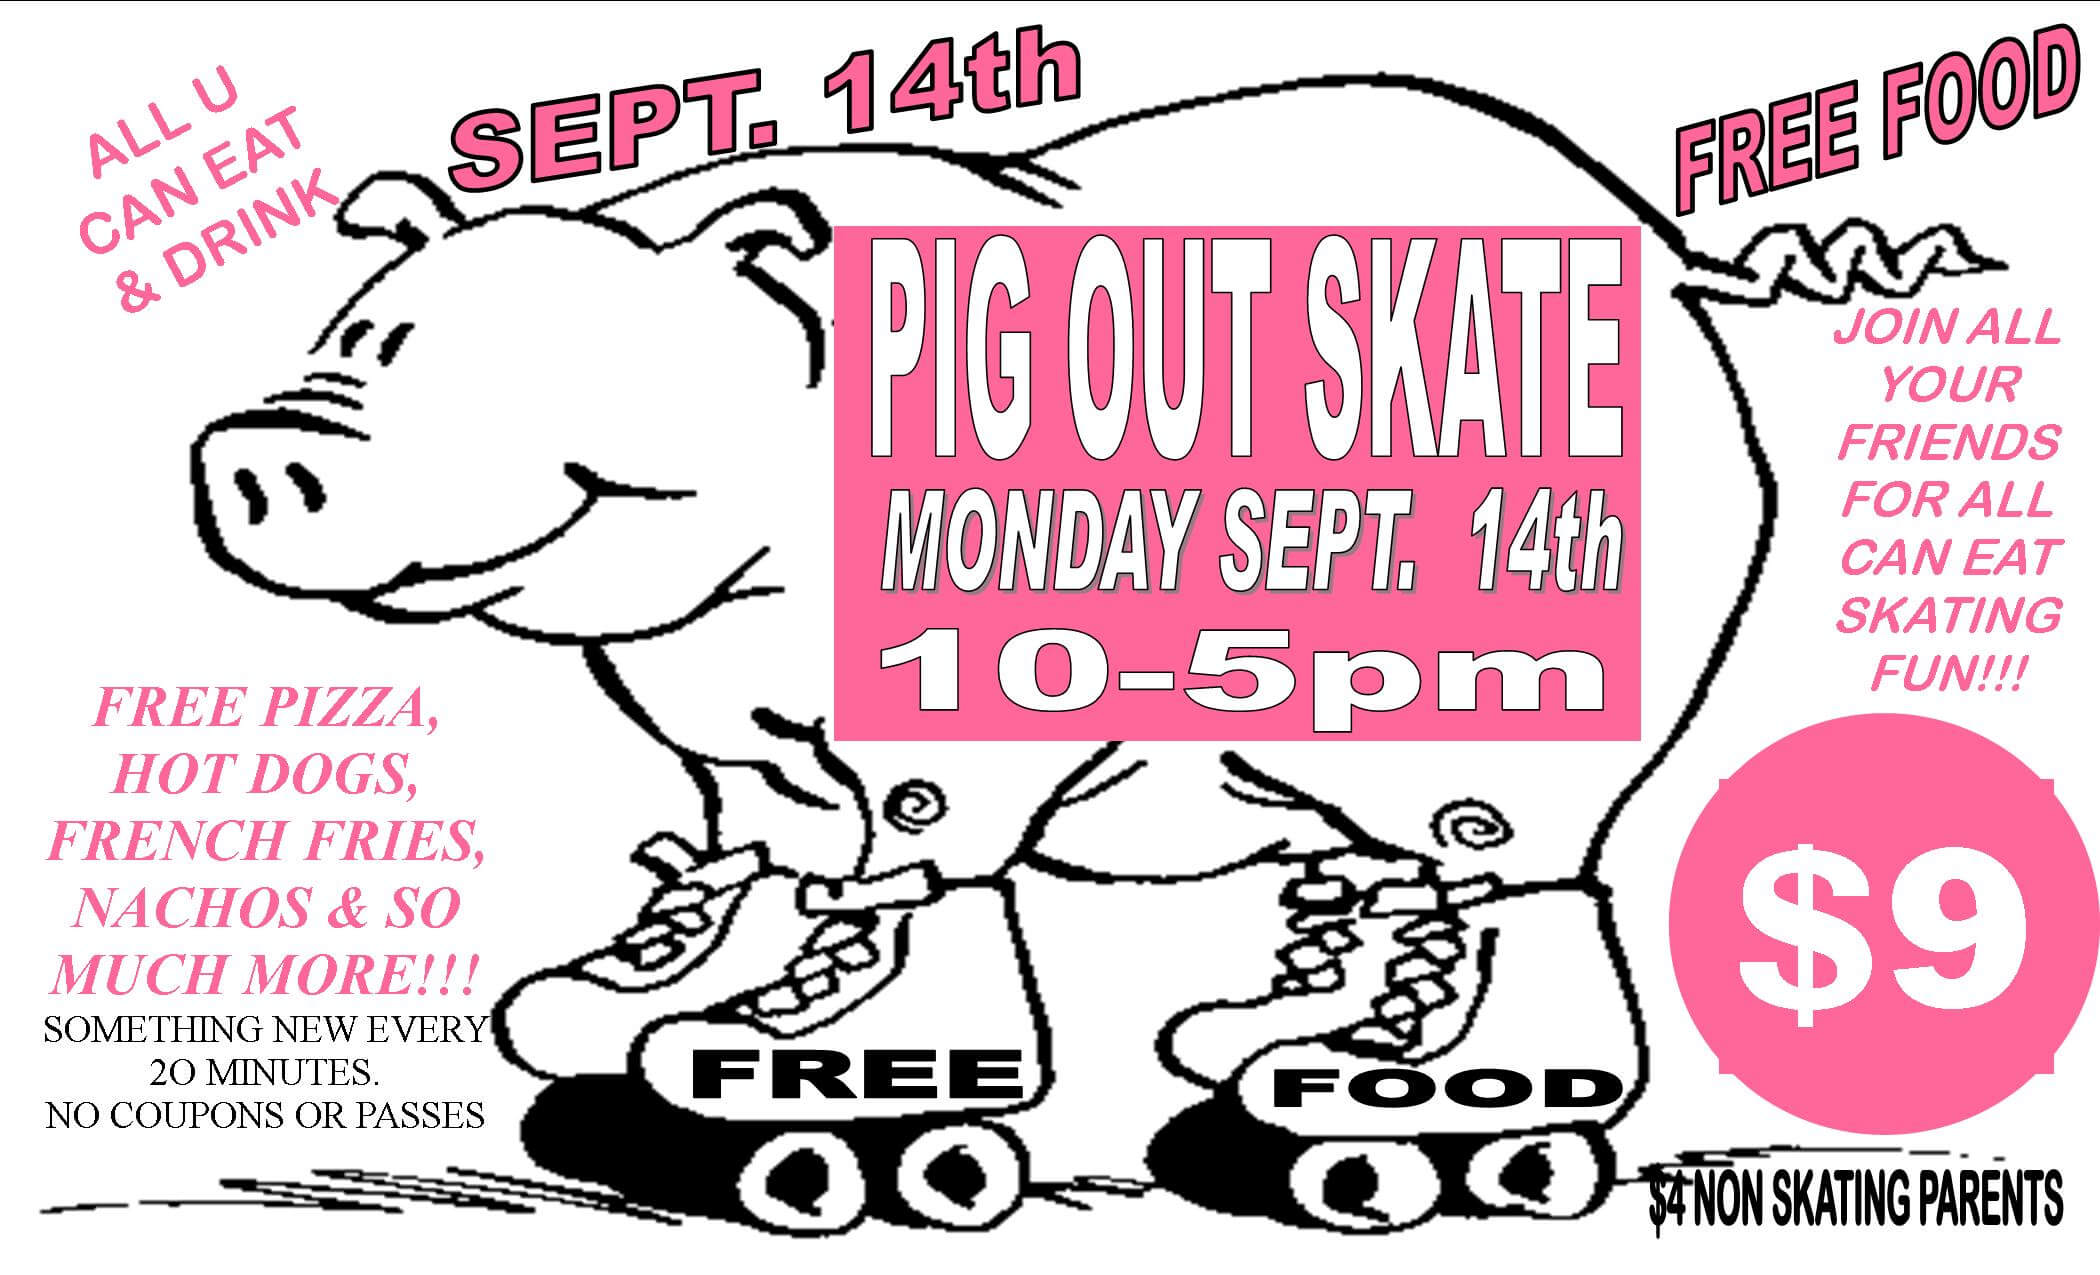 Pig Out Skate